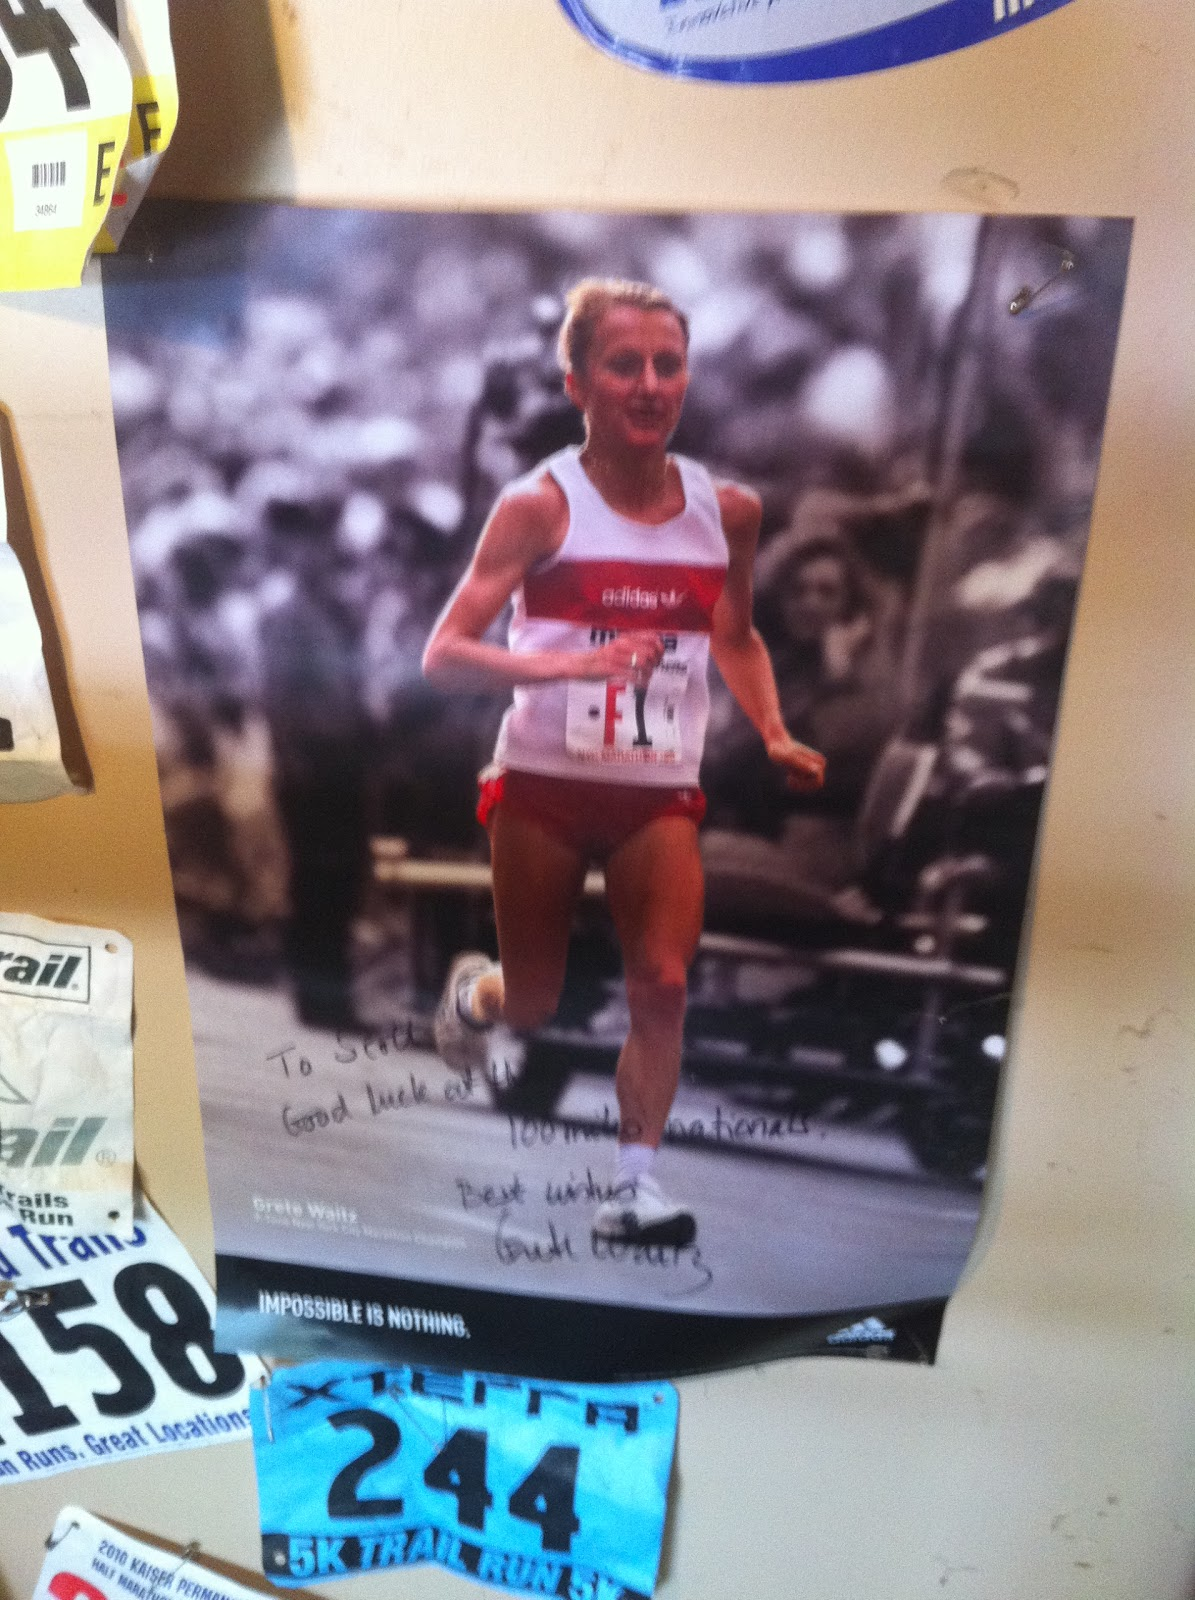 images Grete Waitz marathon running